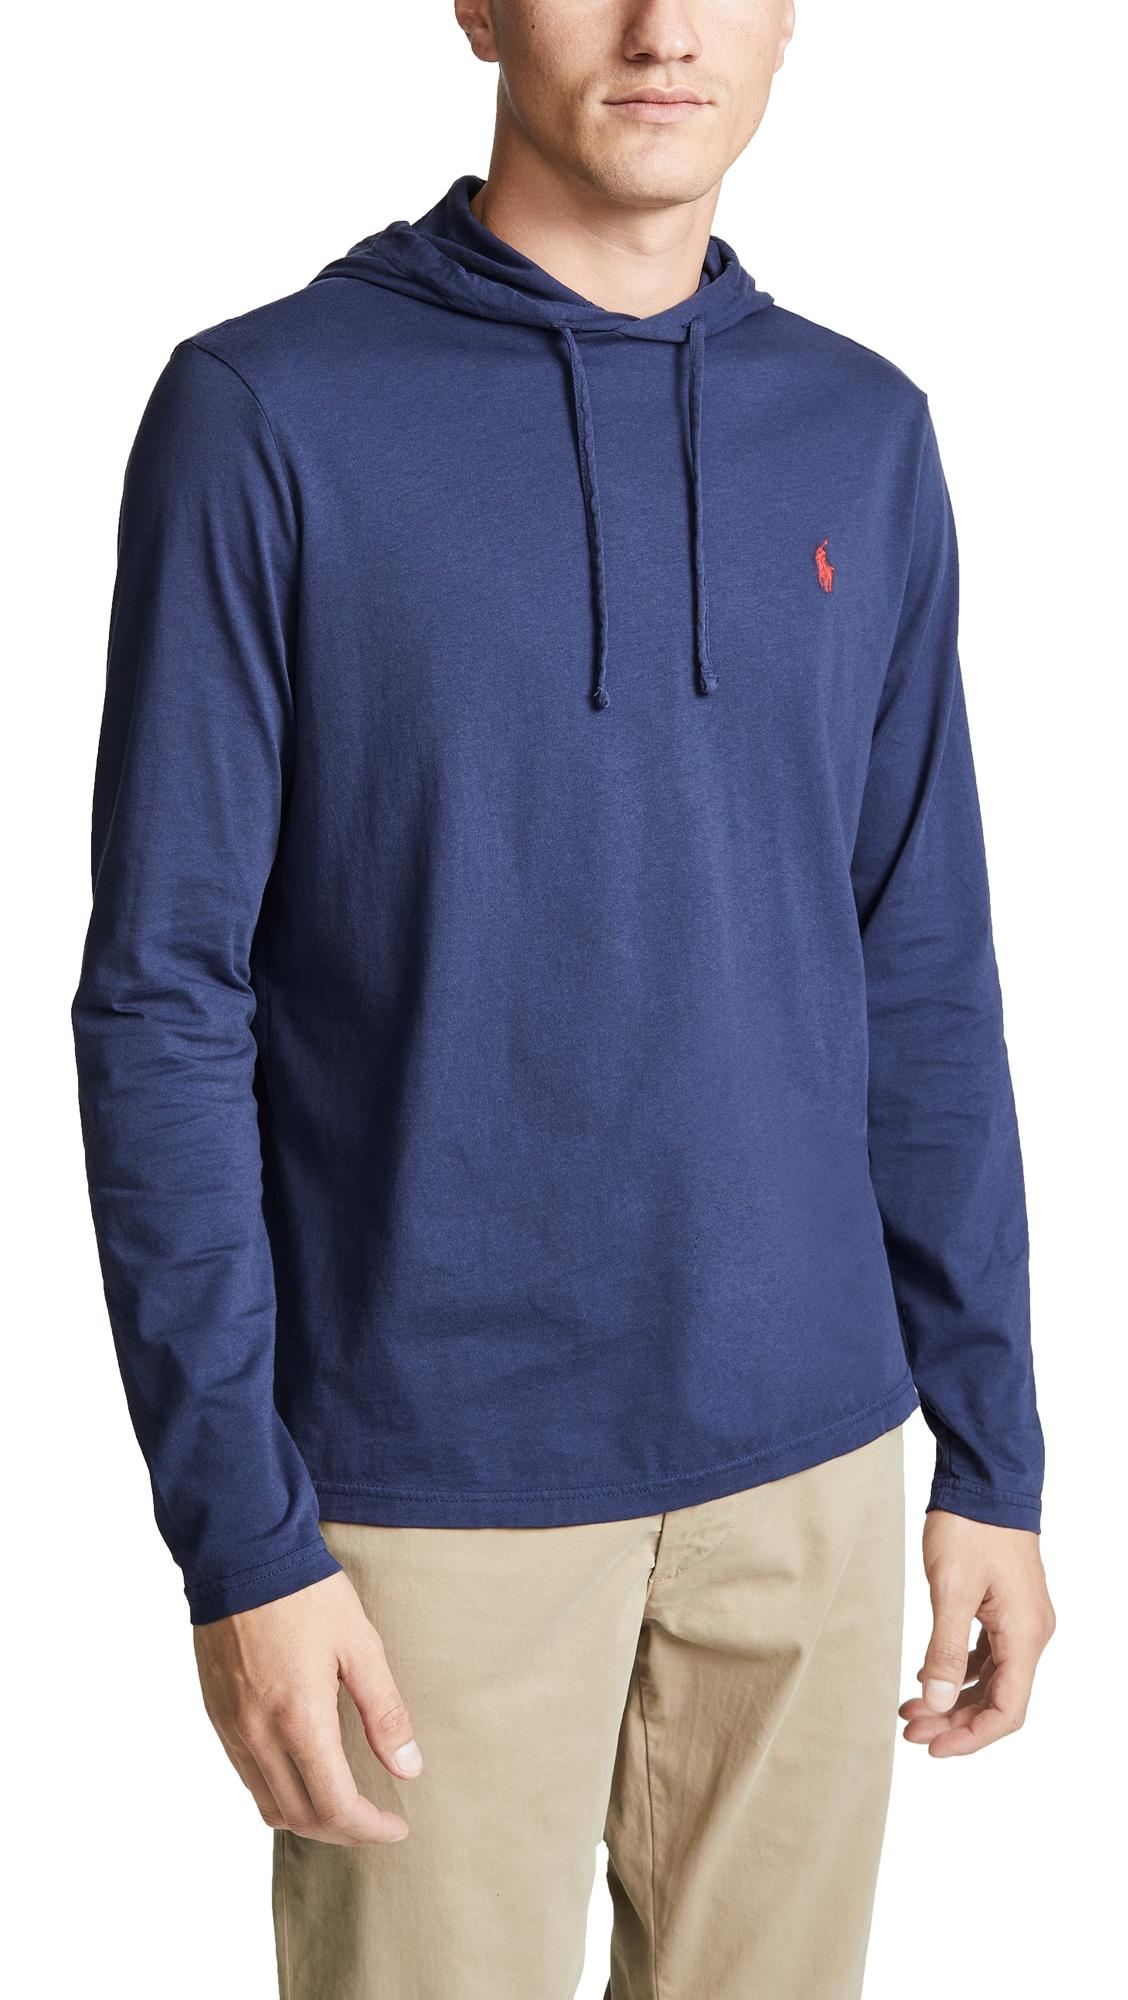 Hooded Shirt Navy Long Tee In Sleeve jS34Aq5LcR